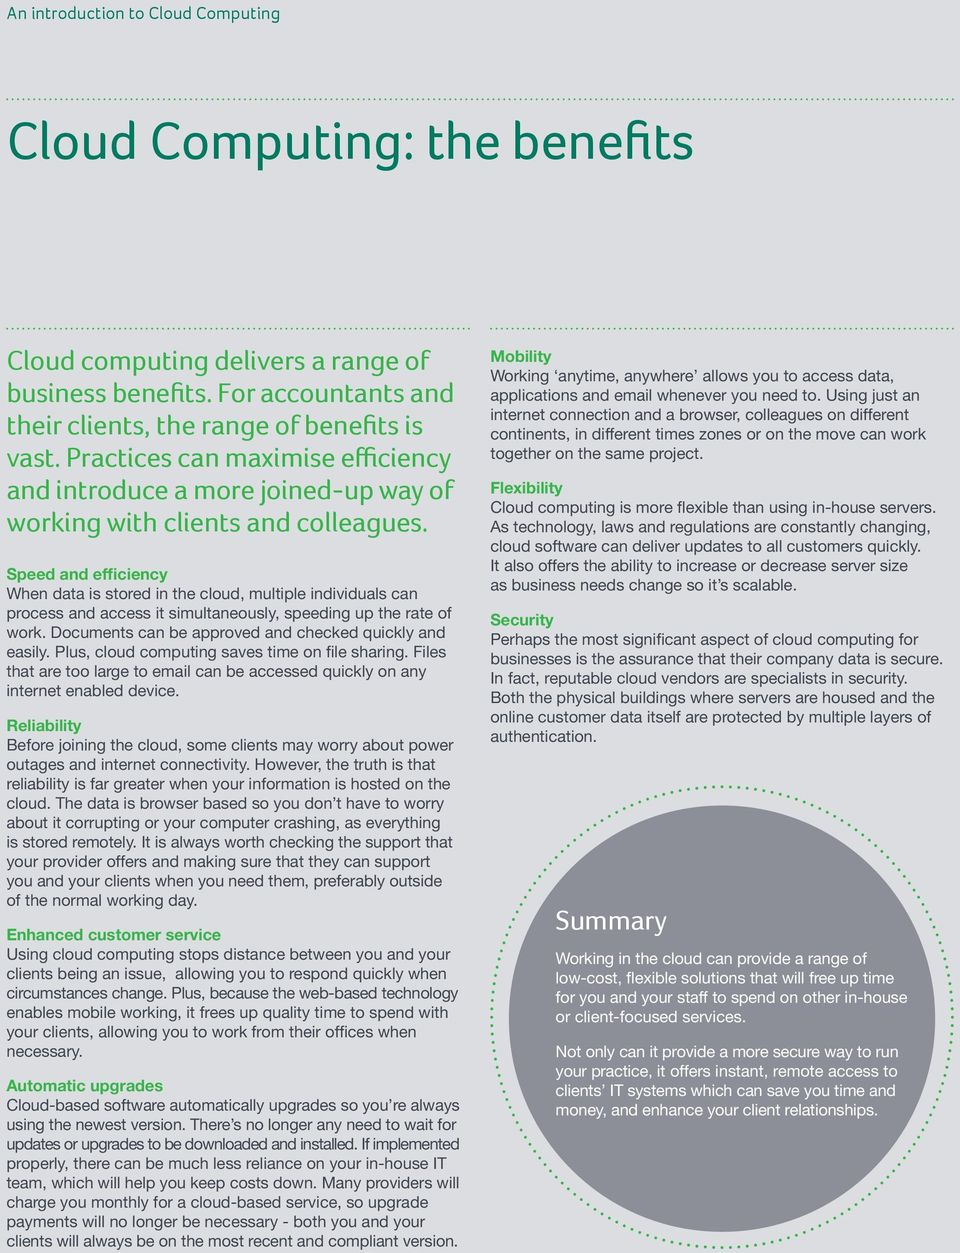 Speed and efficiency When data is stored in the cloud, multiple individuals can process and access it simultaneously, speeding up the rate of work.